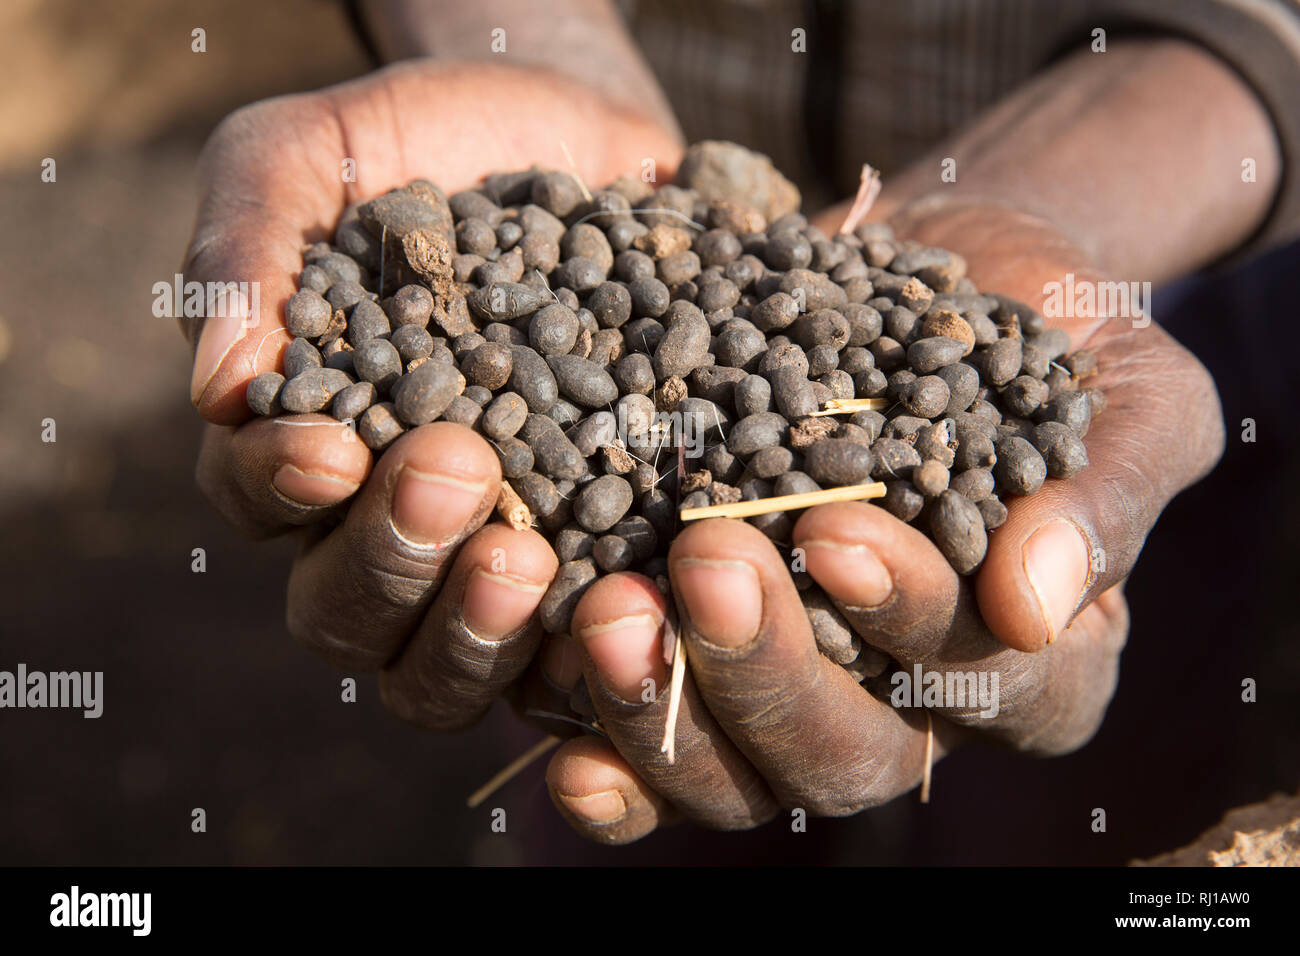 Kourono village, Yako province, Burkina Faso; Moussa Mande, 54, goat project beneficiary, with goat droppings he will use to fertilize his crop fields. Stock Photo